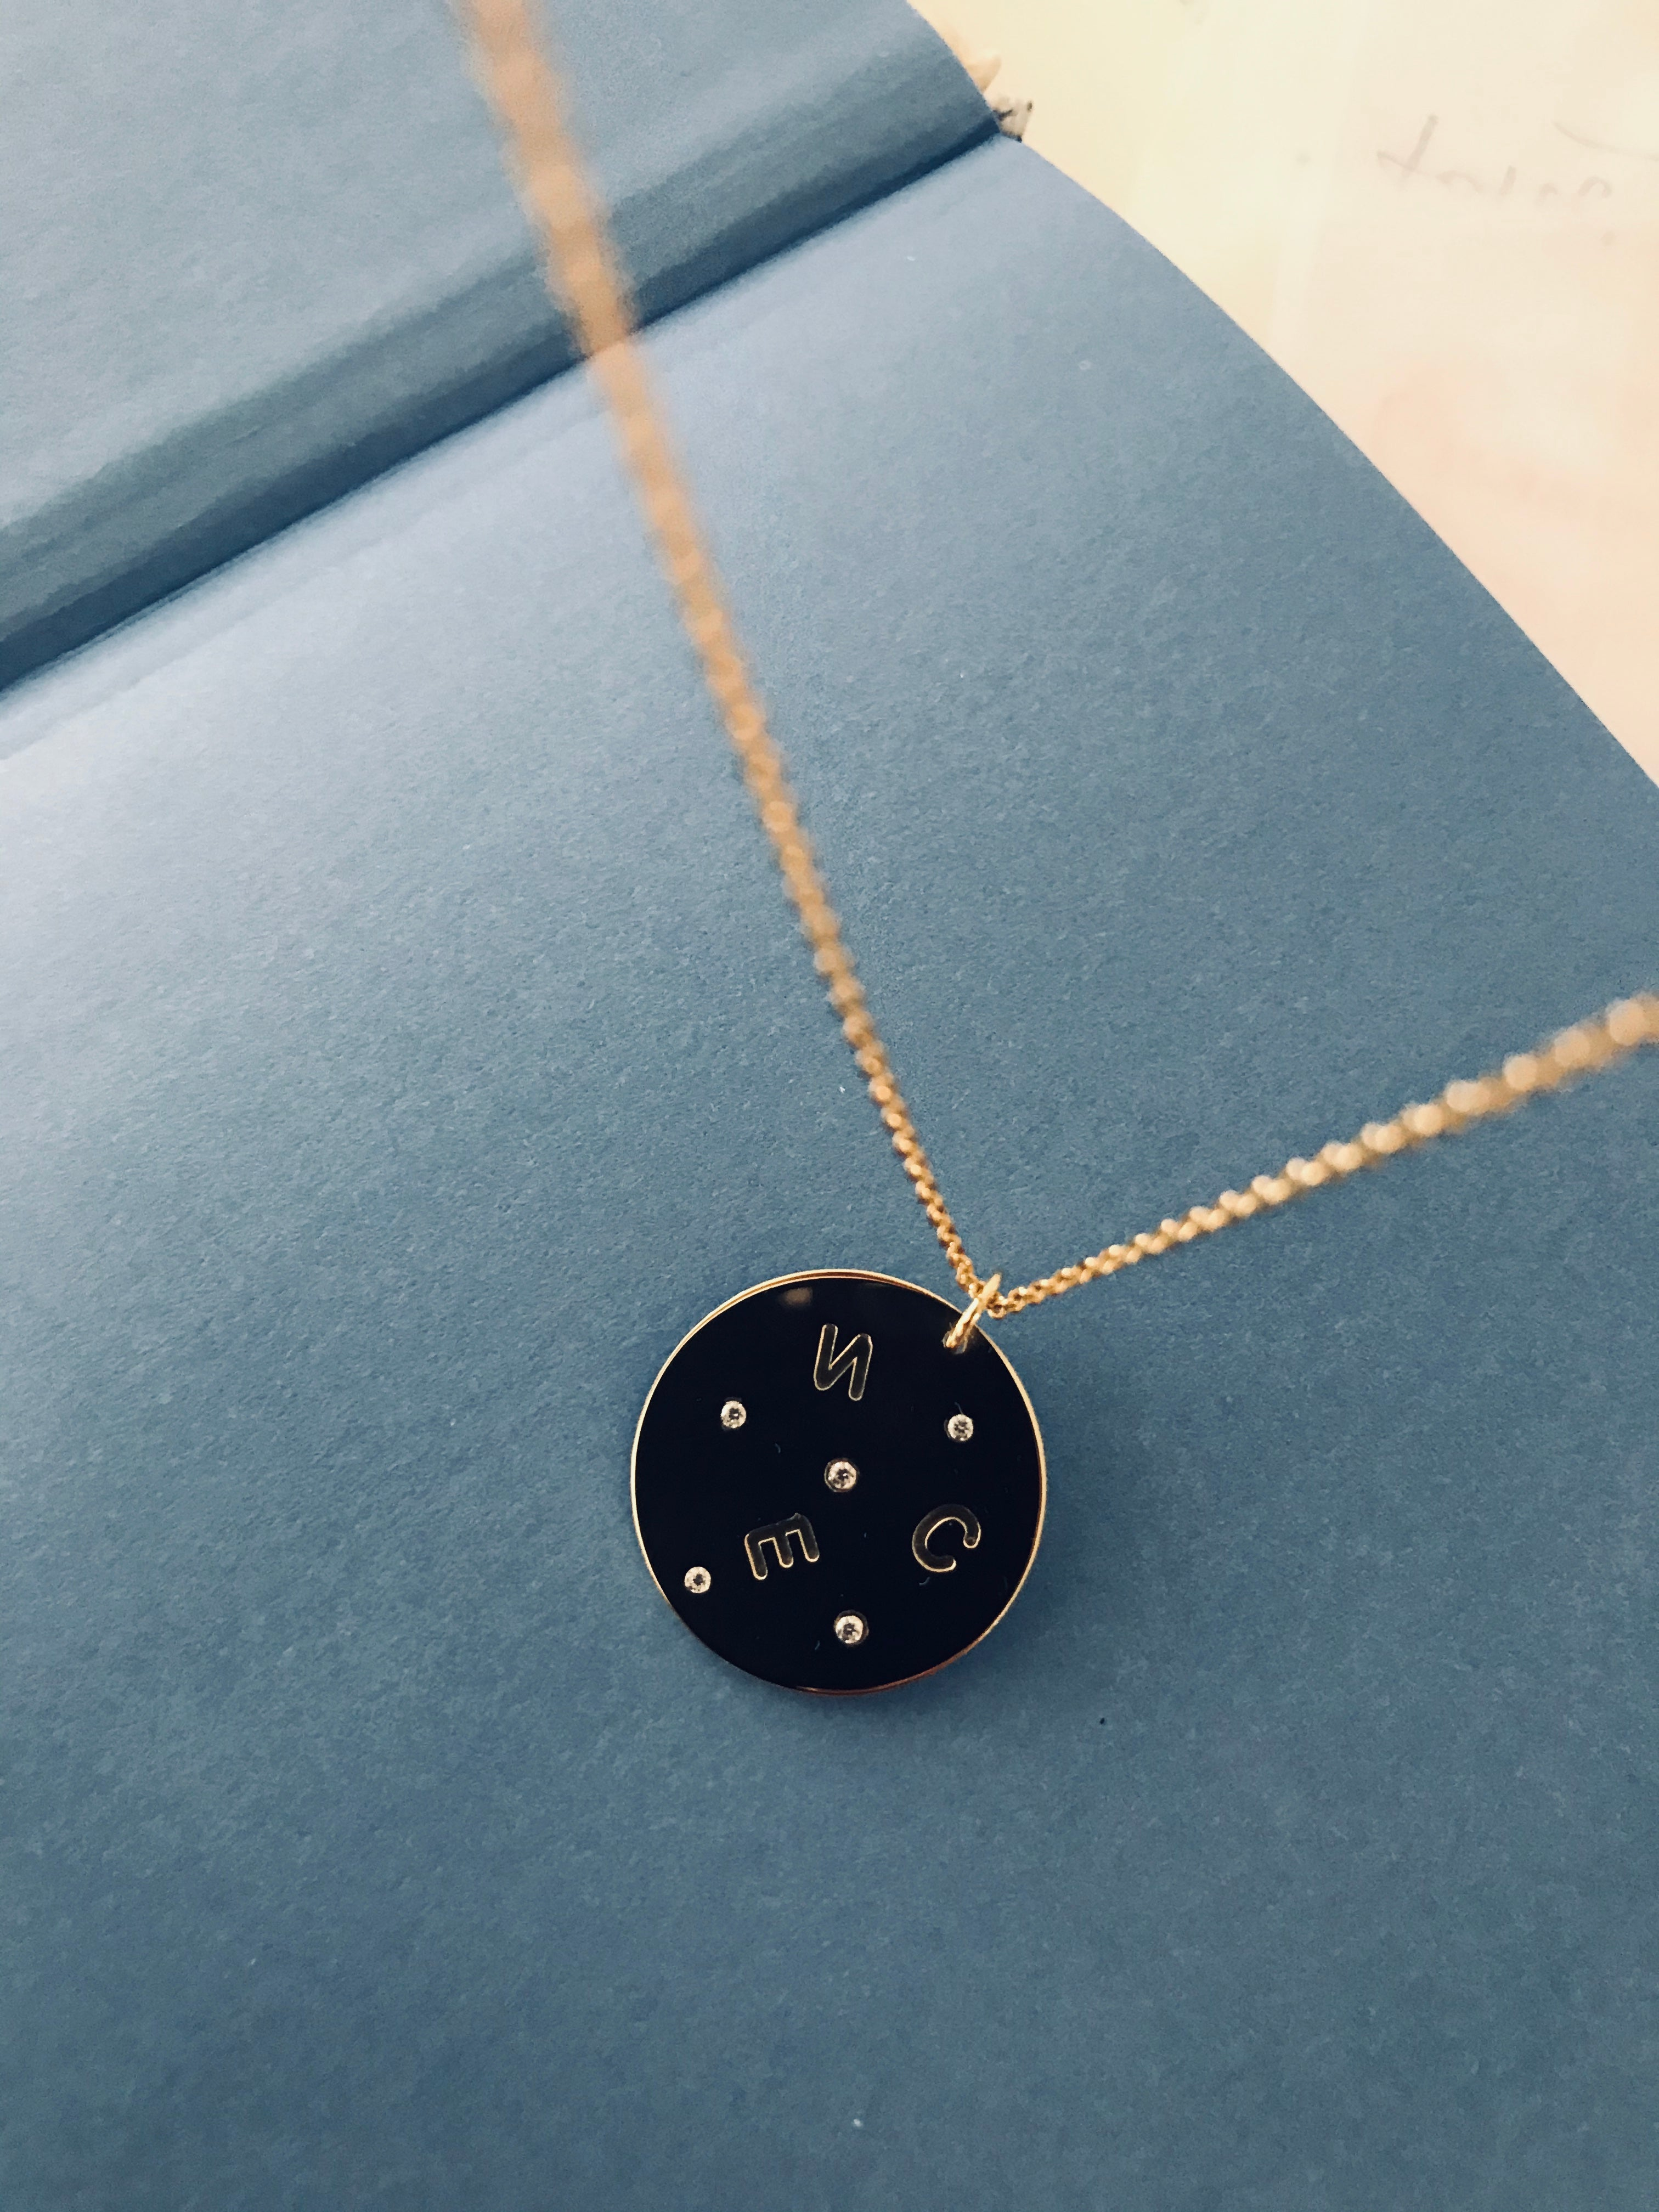 GALAXIE necklace - BYVELA jewellery